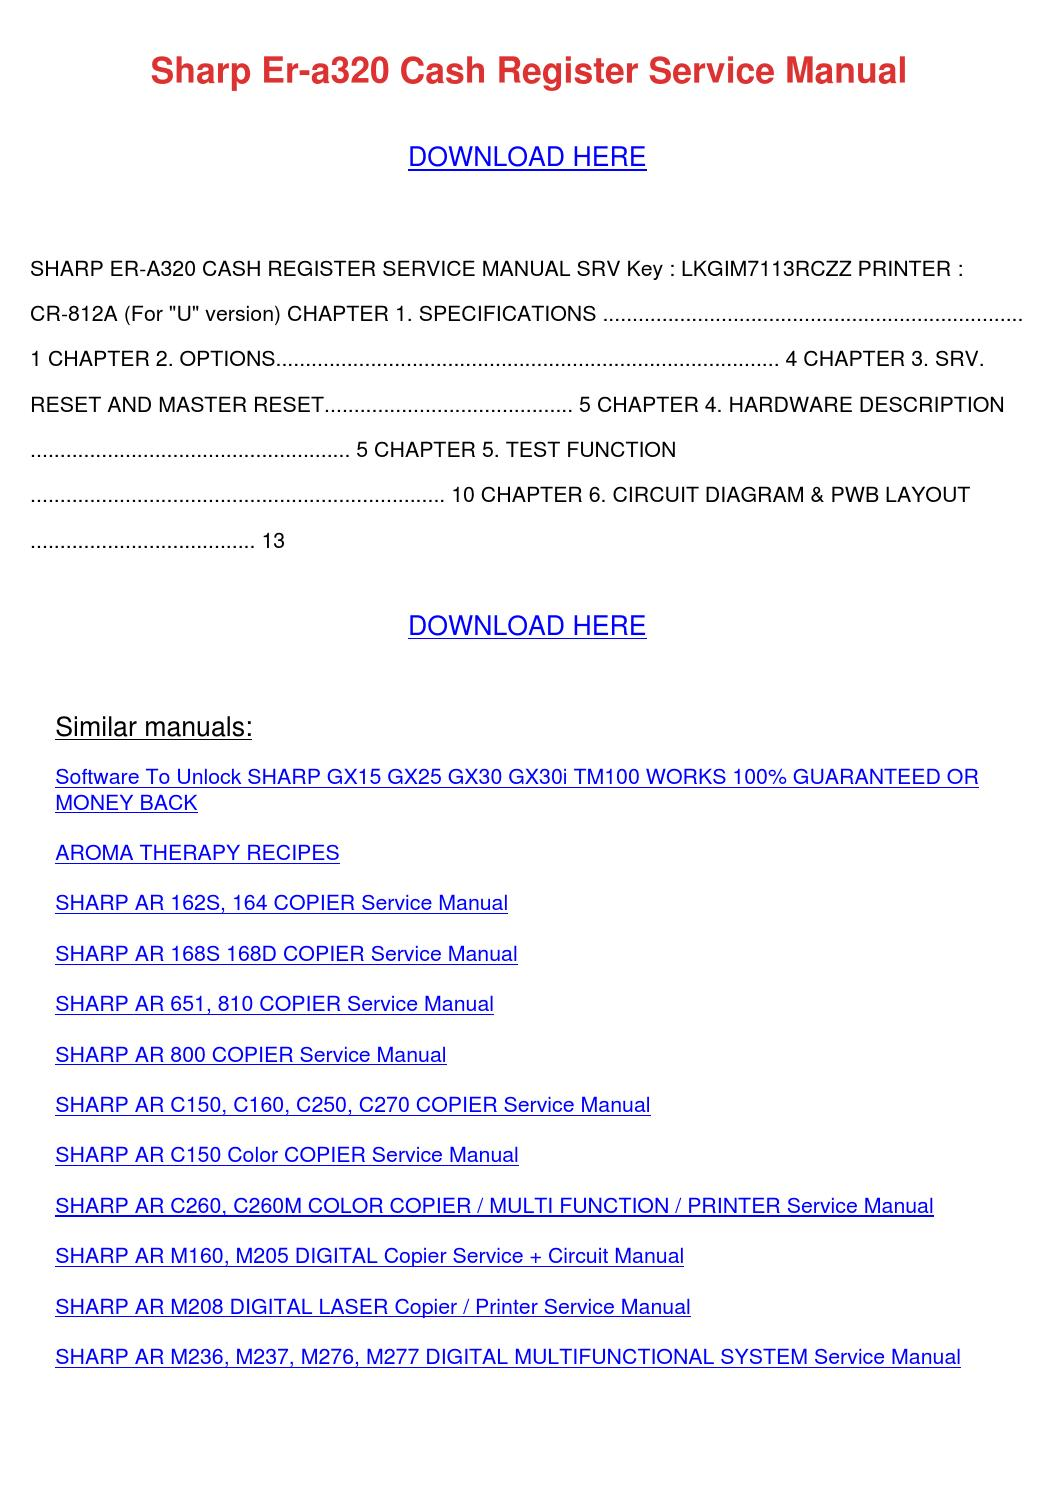 Sharp Er A320 Cash Register Service Manual By Tommyscarbrough